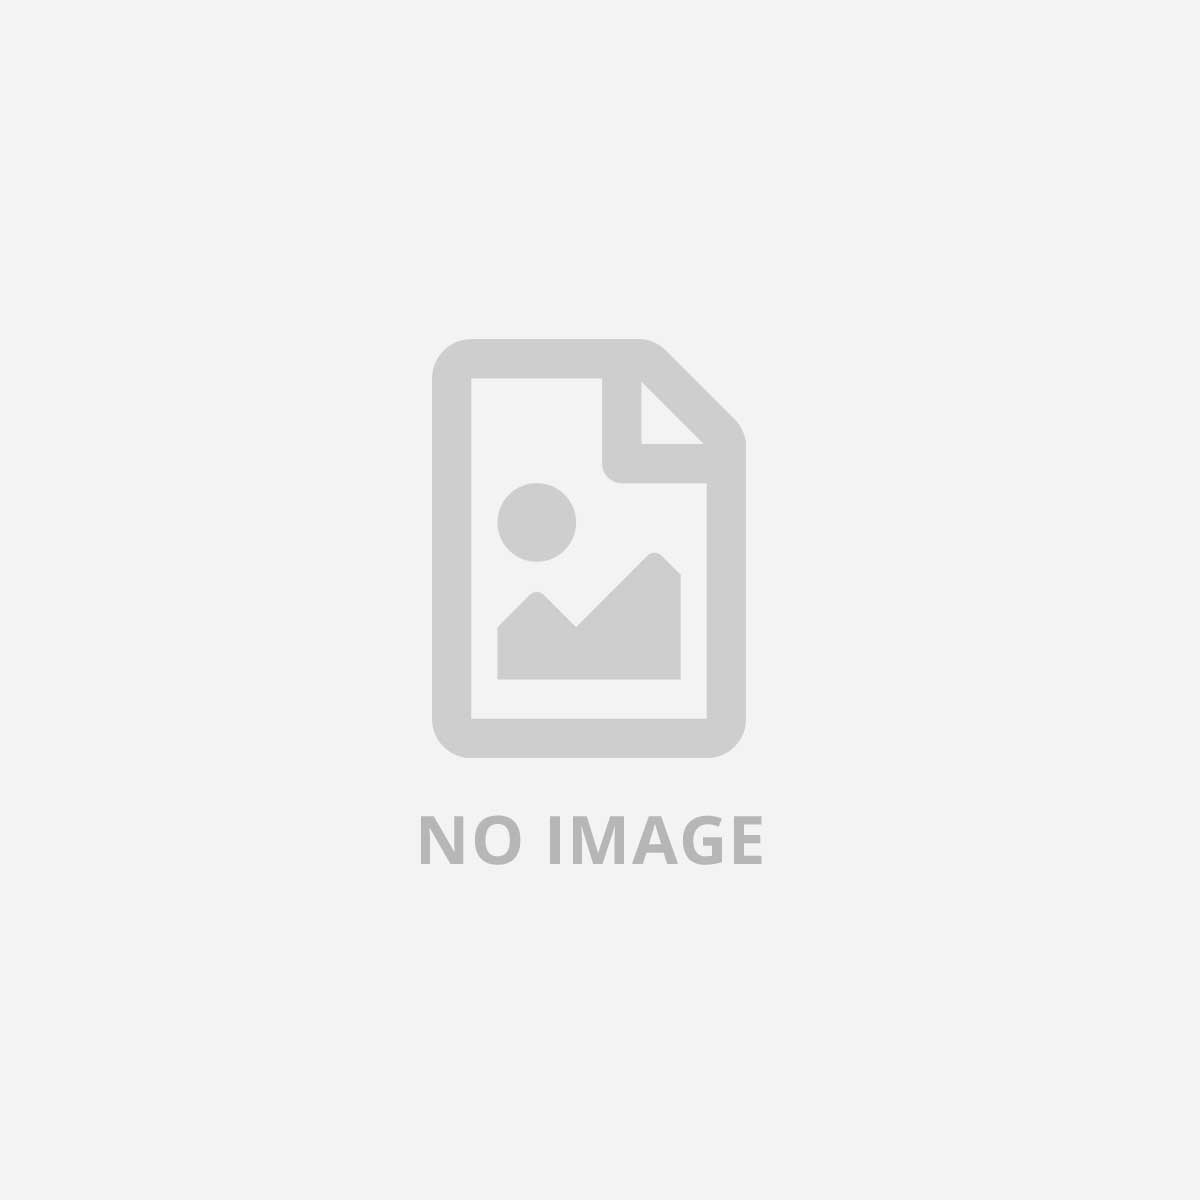 EPSON BOND PAPER BRIGHT90 IN ROTOLI